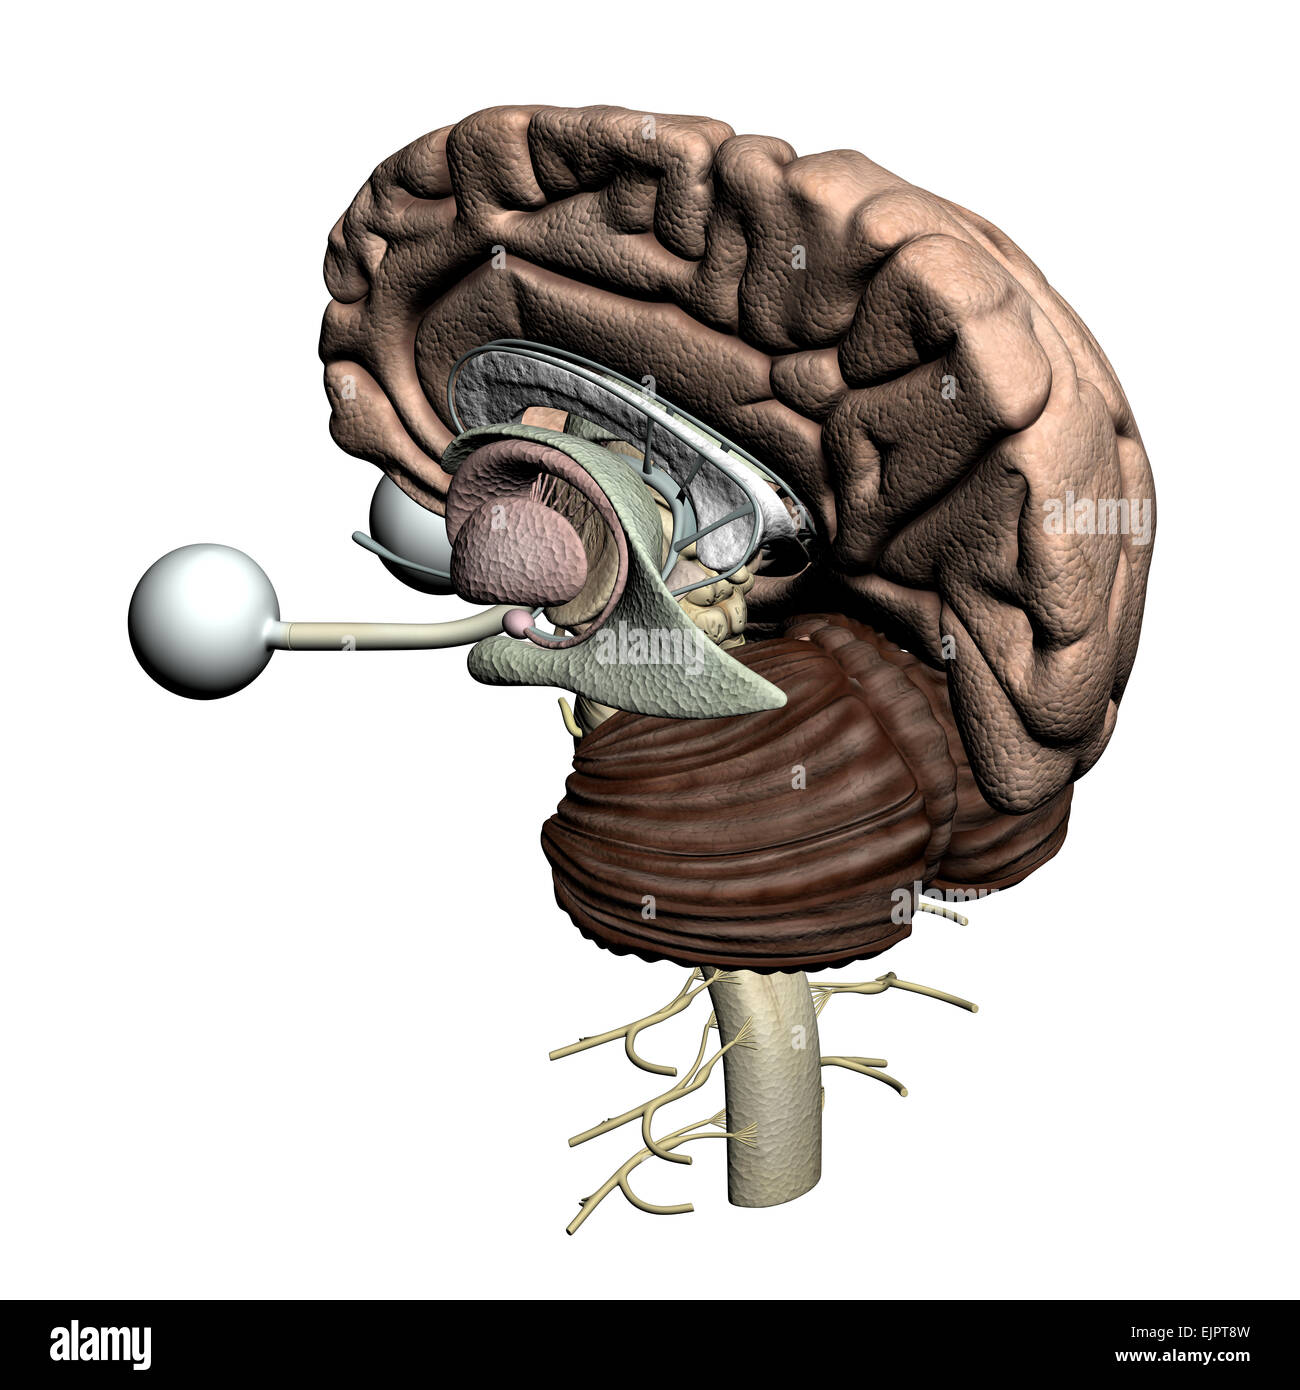 Brain Frontal Section Stock Photos & Brain Frontal Section Stock ...